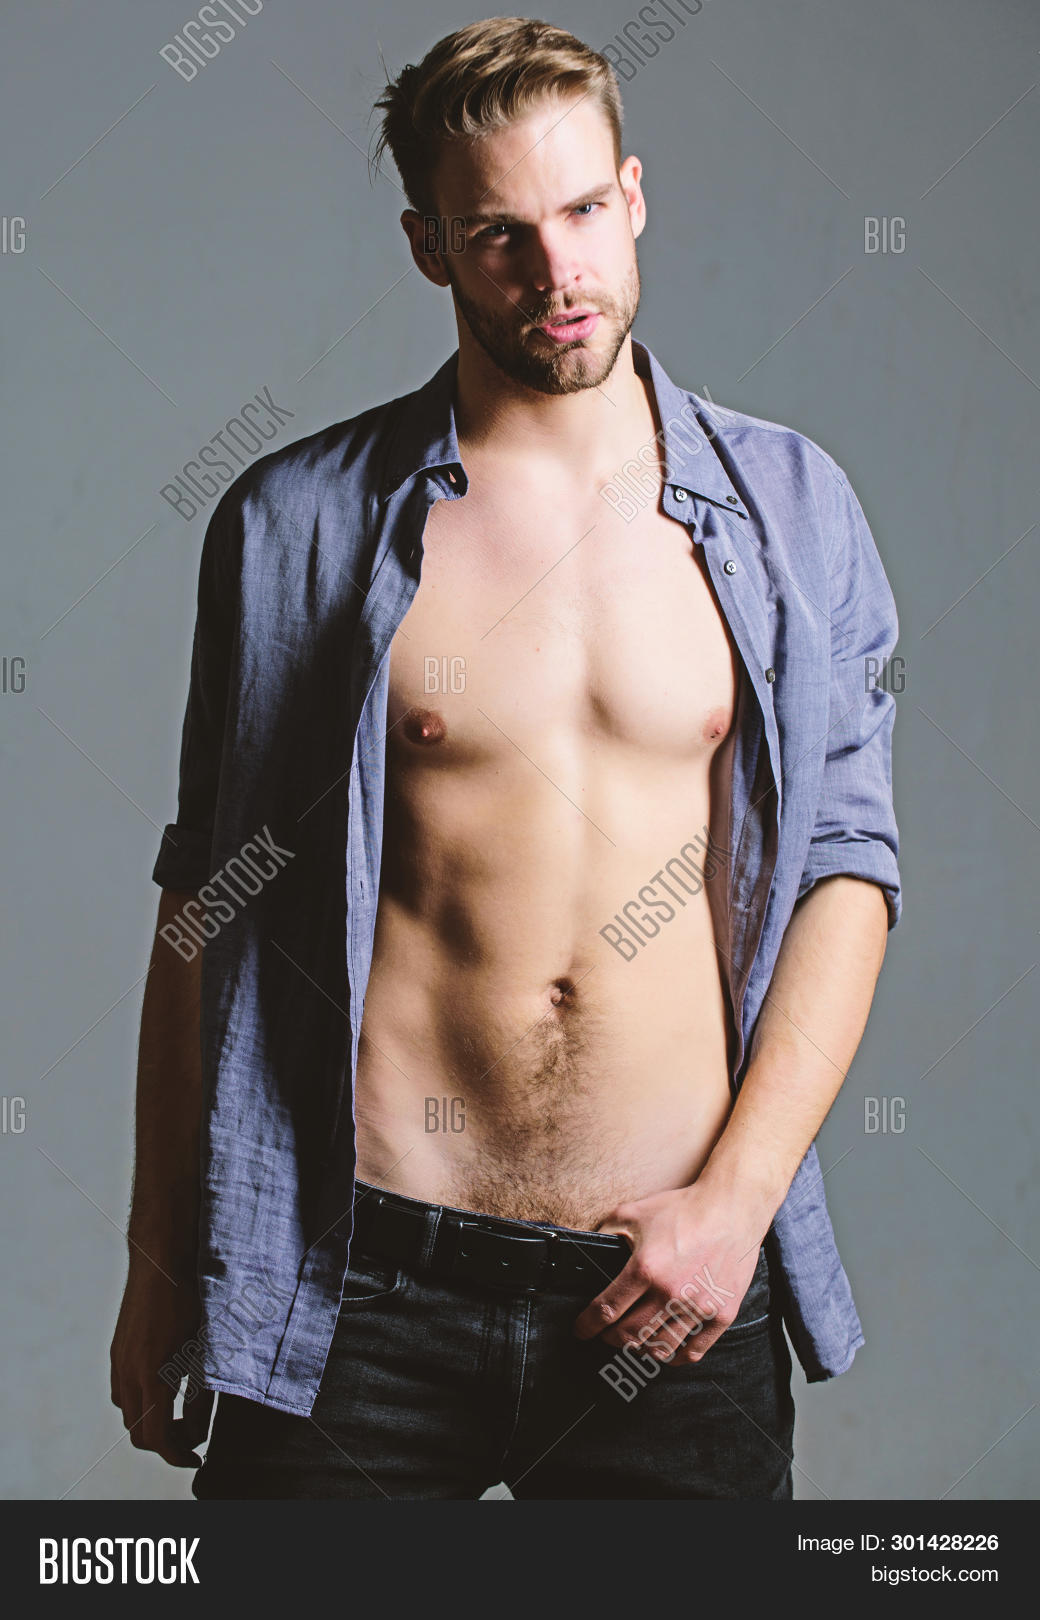 adult,attractive,background,beard,bearded,beauty,body,bohemian,clothes,clothing,concept,confident,desire,erotic,fashion,fashionable,feeling,flirty,full,grey,guy,handsome,hipster,horny,hot,lustful,macho,man,masculine,masculinity,menswear,muscular,object,off,randy,seductive,sexi,sexy,shirt,show,take,torso,unbuttoning,undressing,want,wear